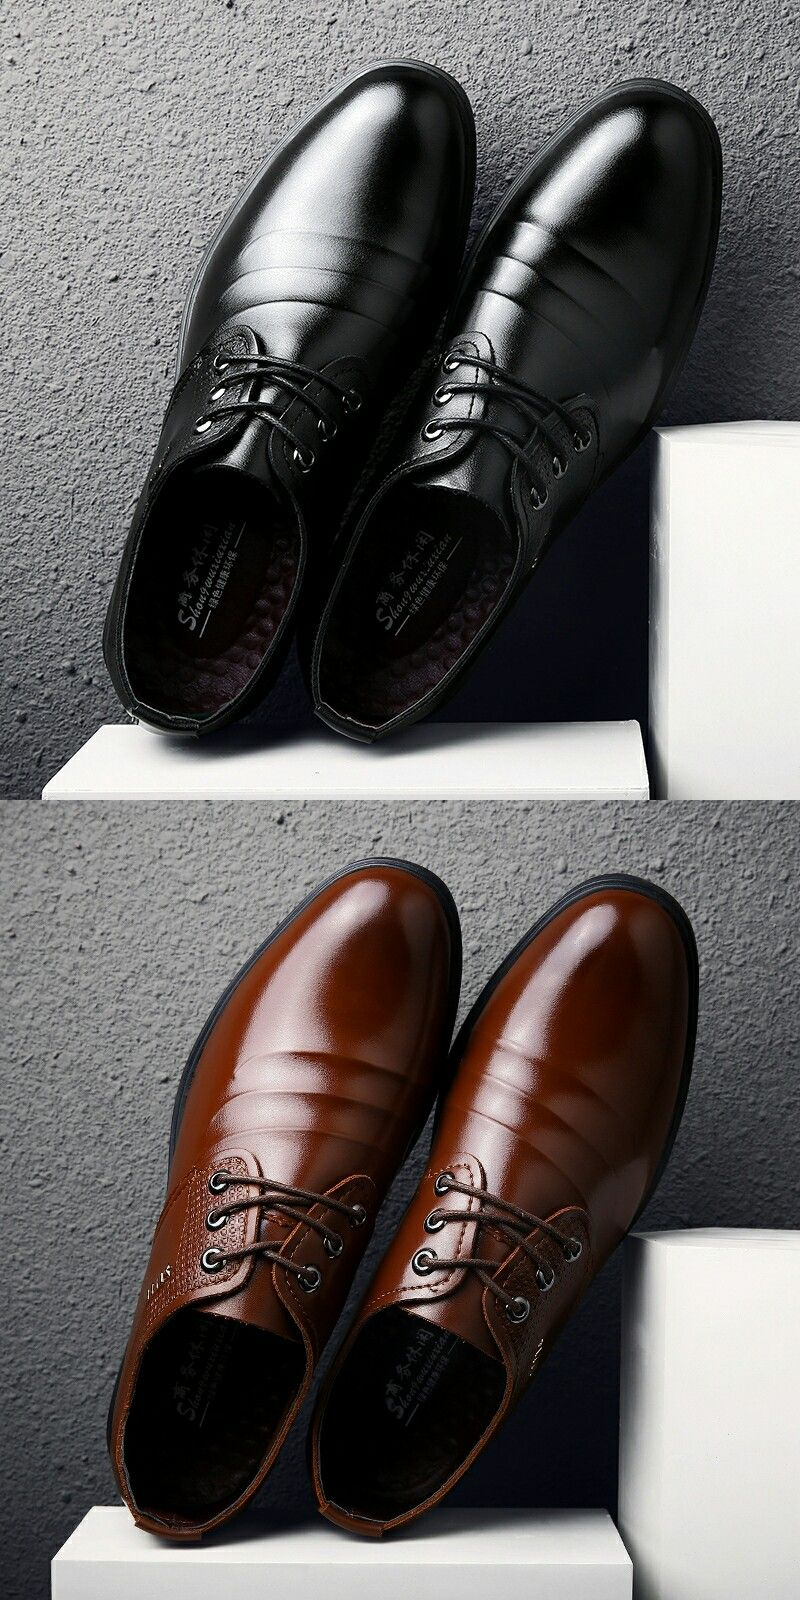 Prelesty Office Men Dress Shoes Pointed Toe Leather Formal